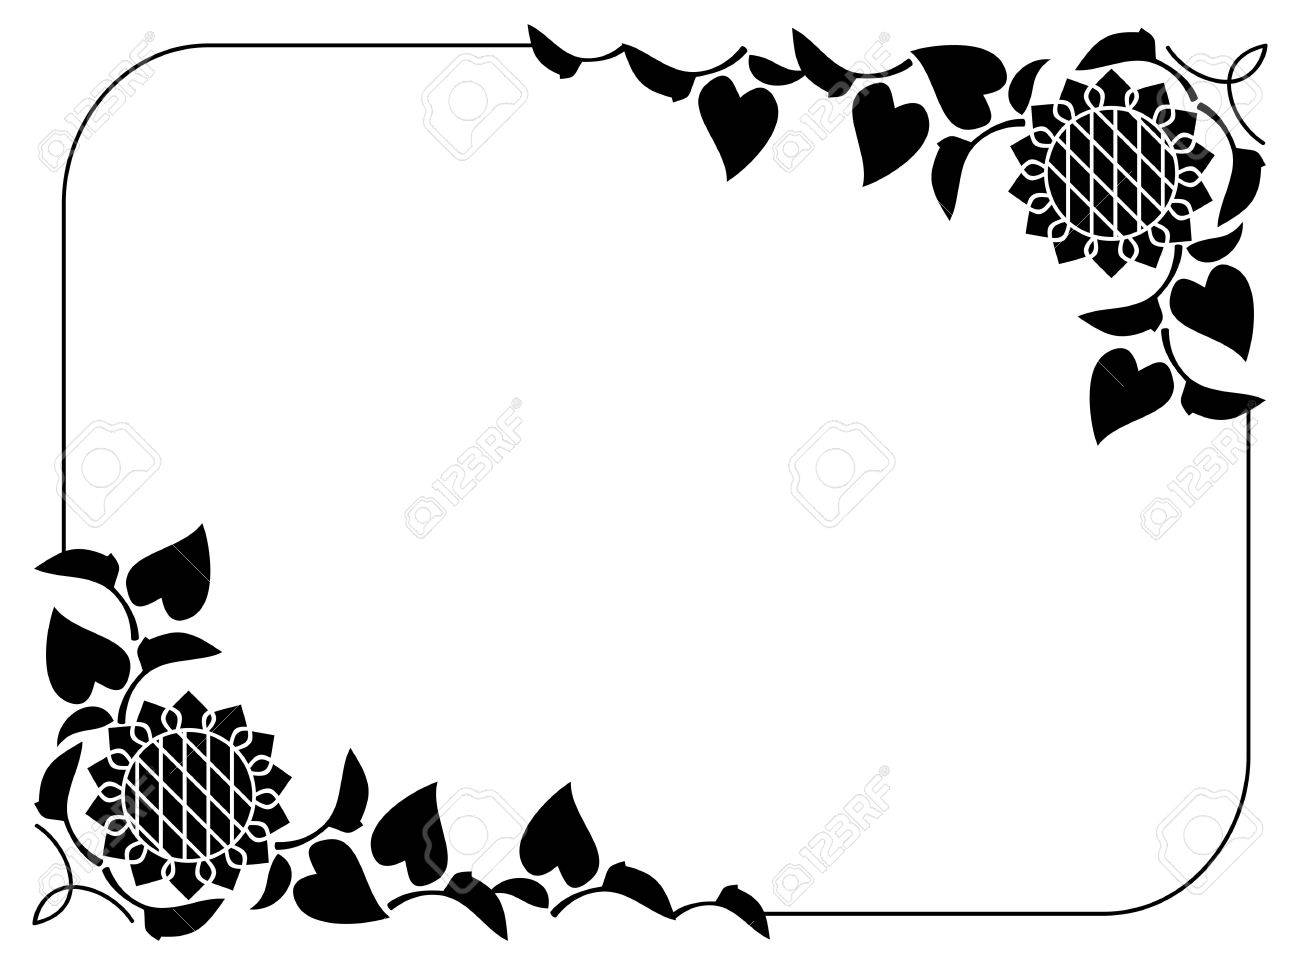 Black And White Horizontal Frame With Decorative Sunflowers Silhouettes Vector Clip Art Stock